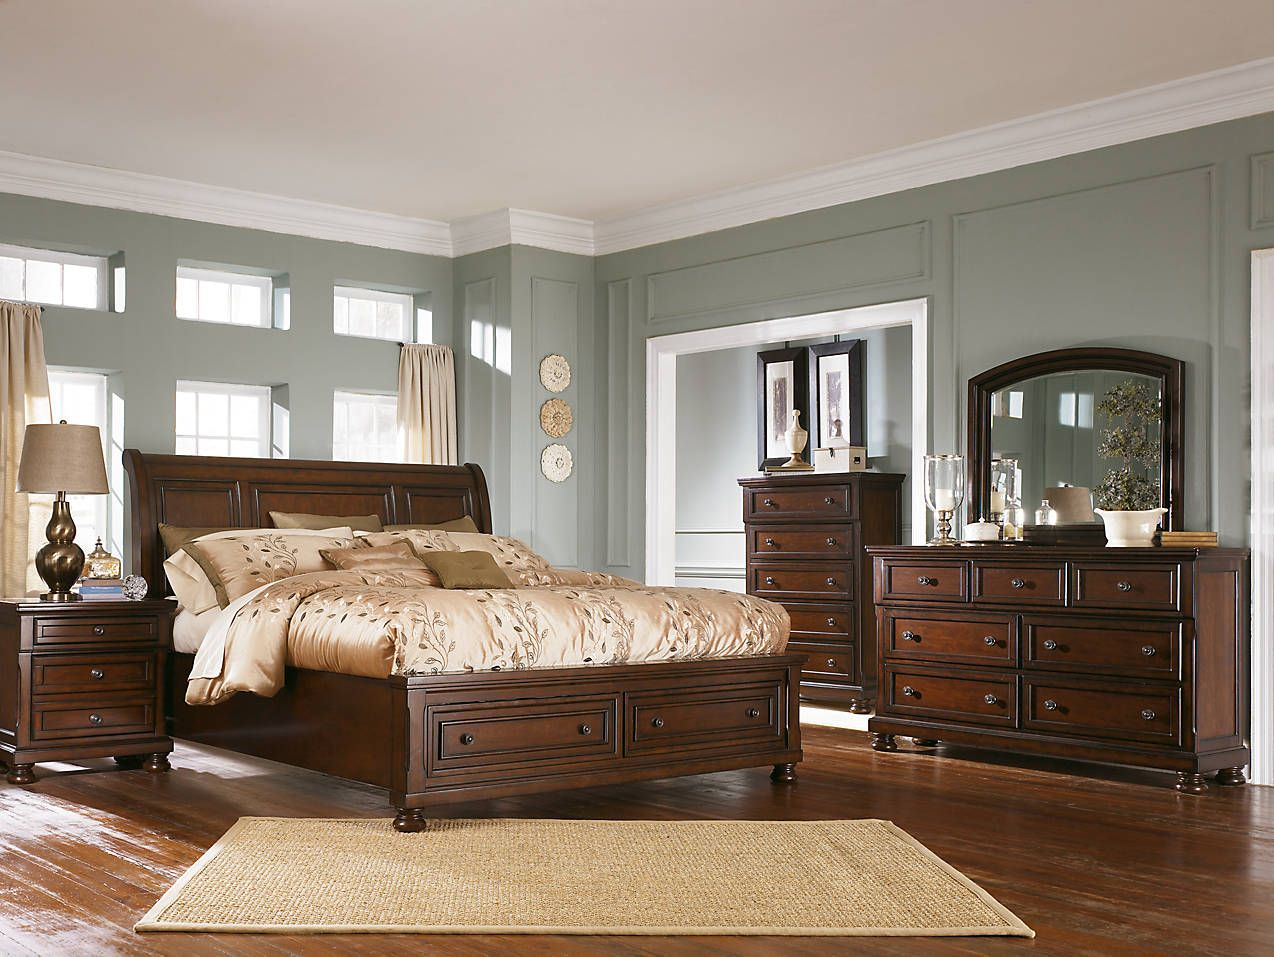 - Porter Traditional Dark Wood Sleigh Bed Frame And Matching